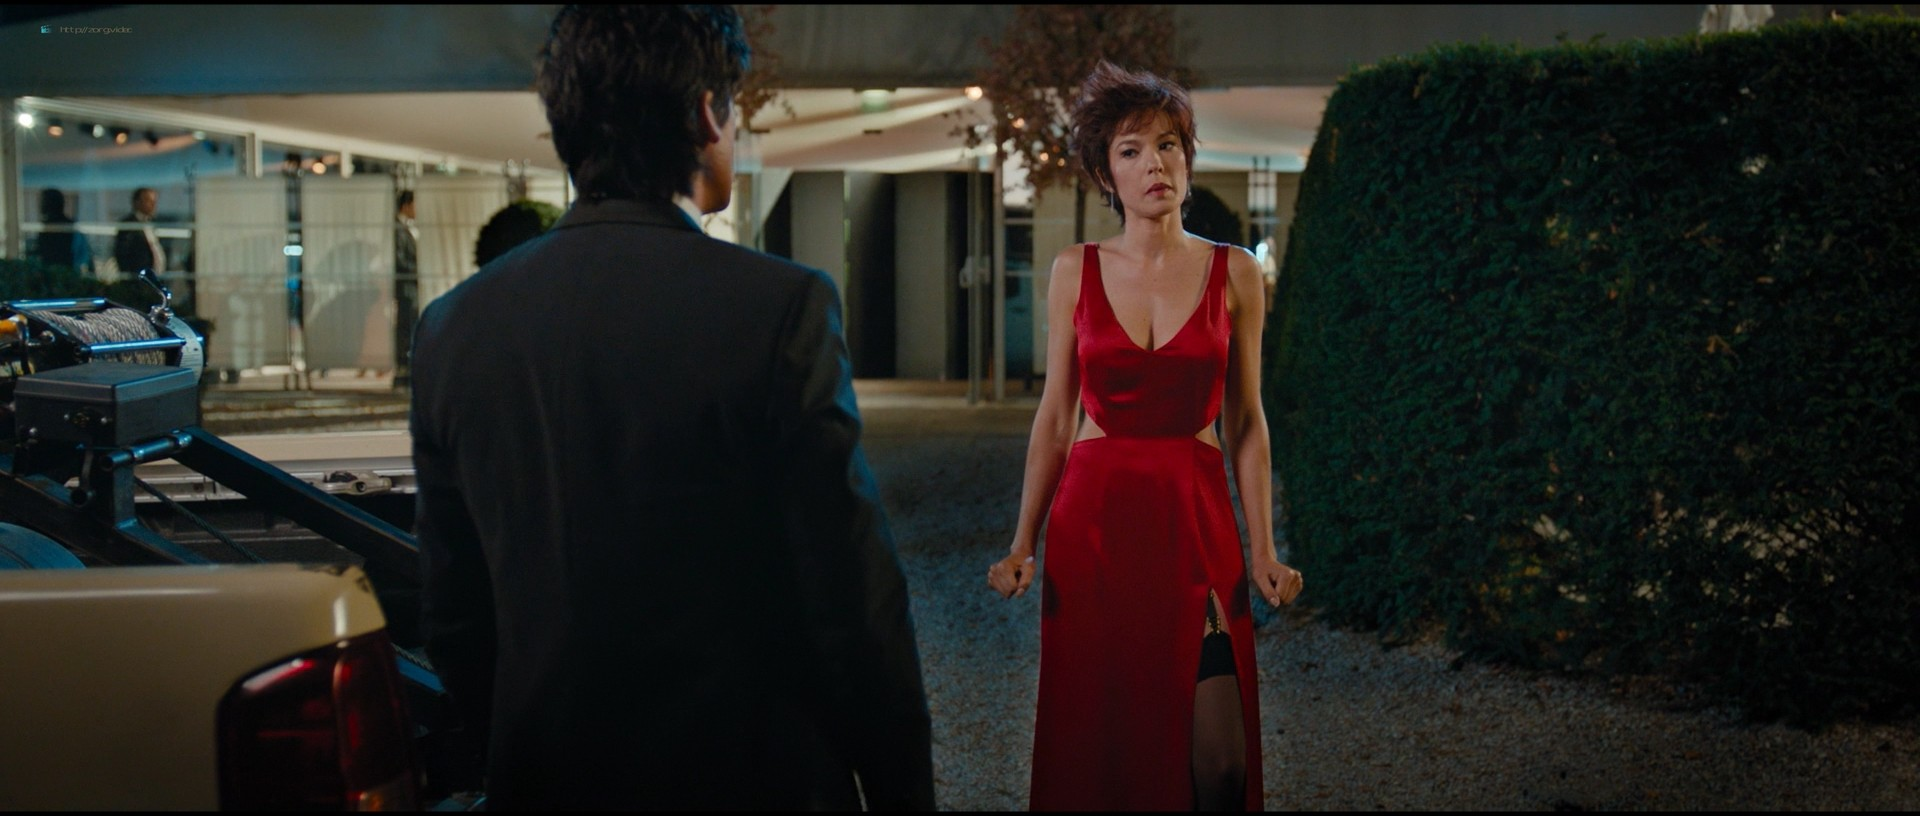 Pamela Anderson sexy Élodie Fontan and others hot - Nicky Larson et le parfum de Cupidon (2018) 1080p BluRay (12)